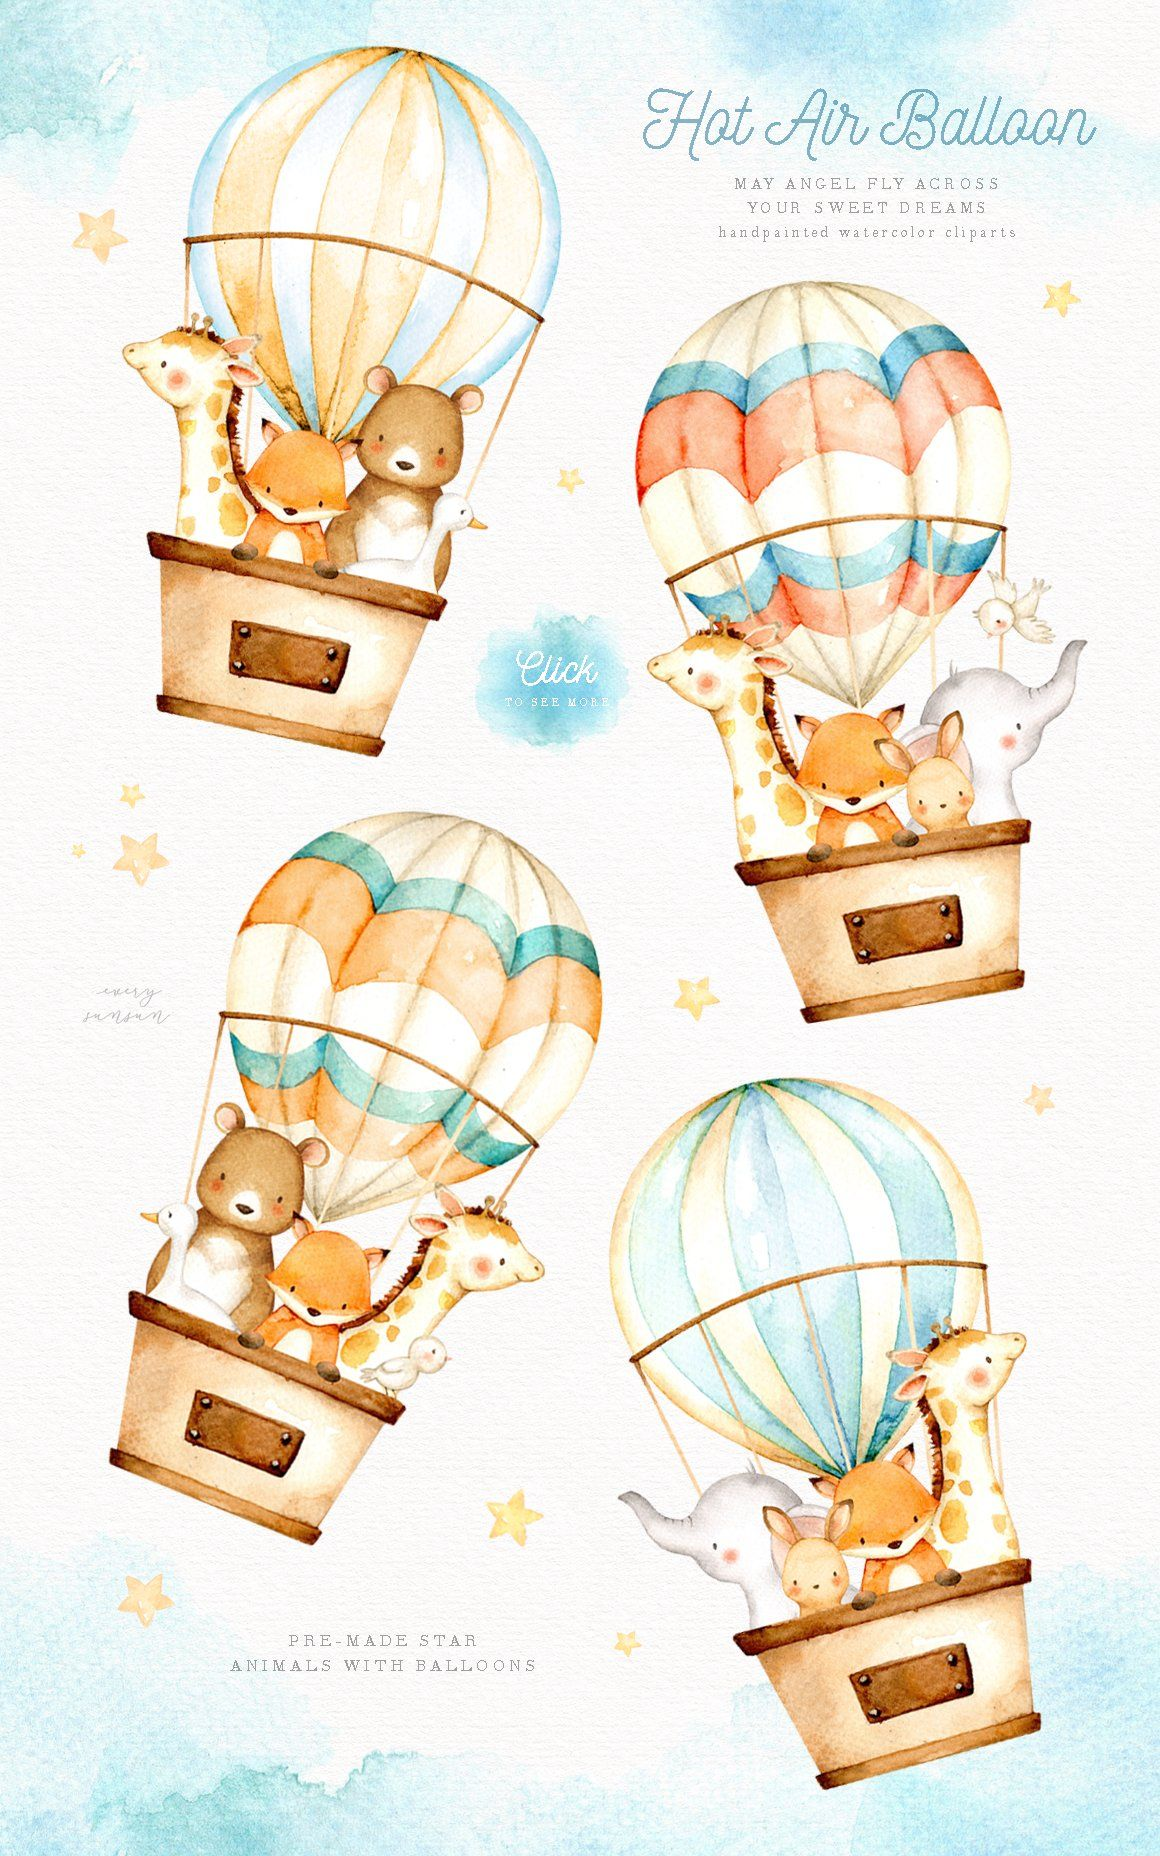 Hot Air Balloon Watercolor Clipart Hot Air Balloon Air Balloon